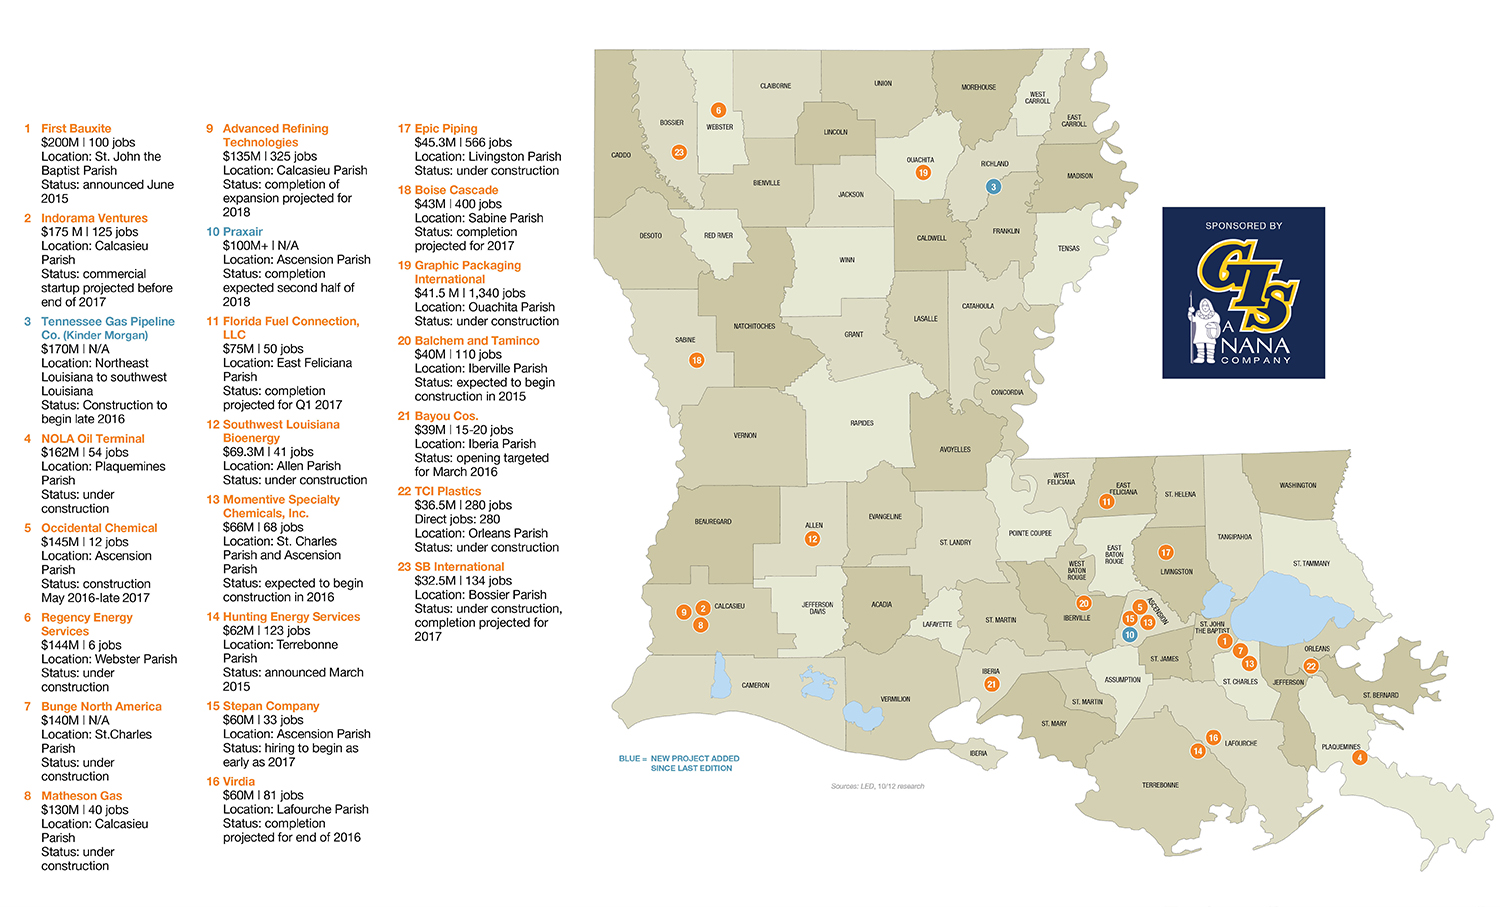 Maps Of The Largest Industrial Projects Driving Growth In South - North louisiana map